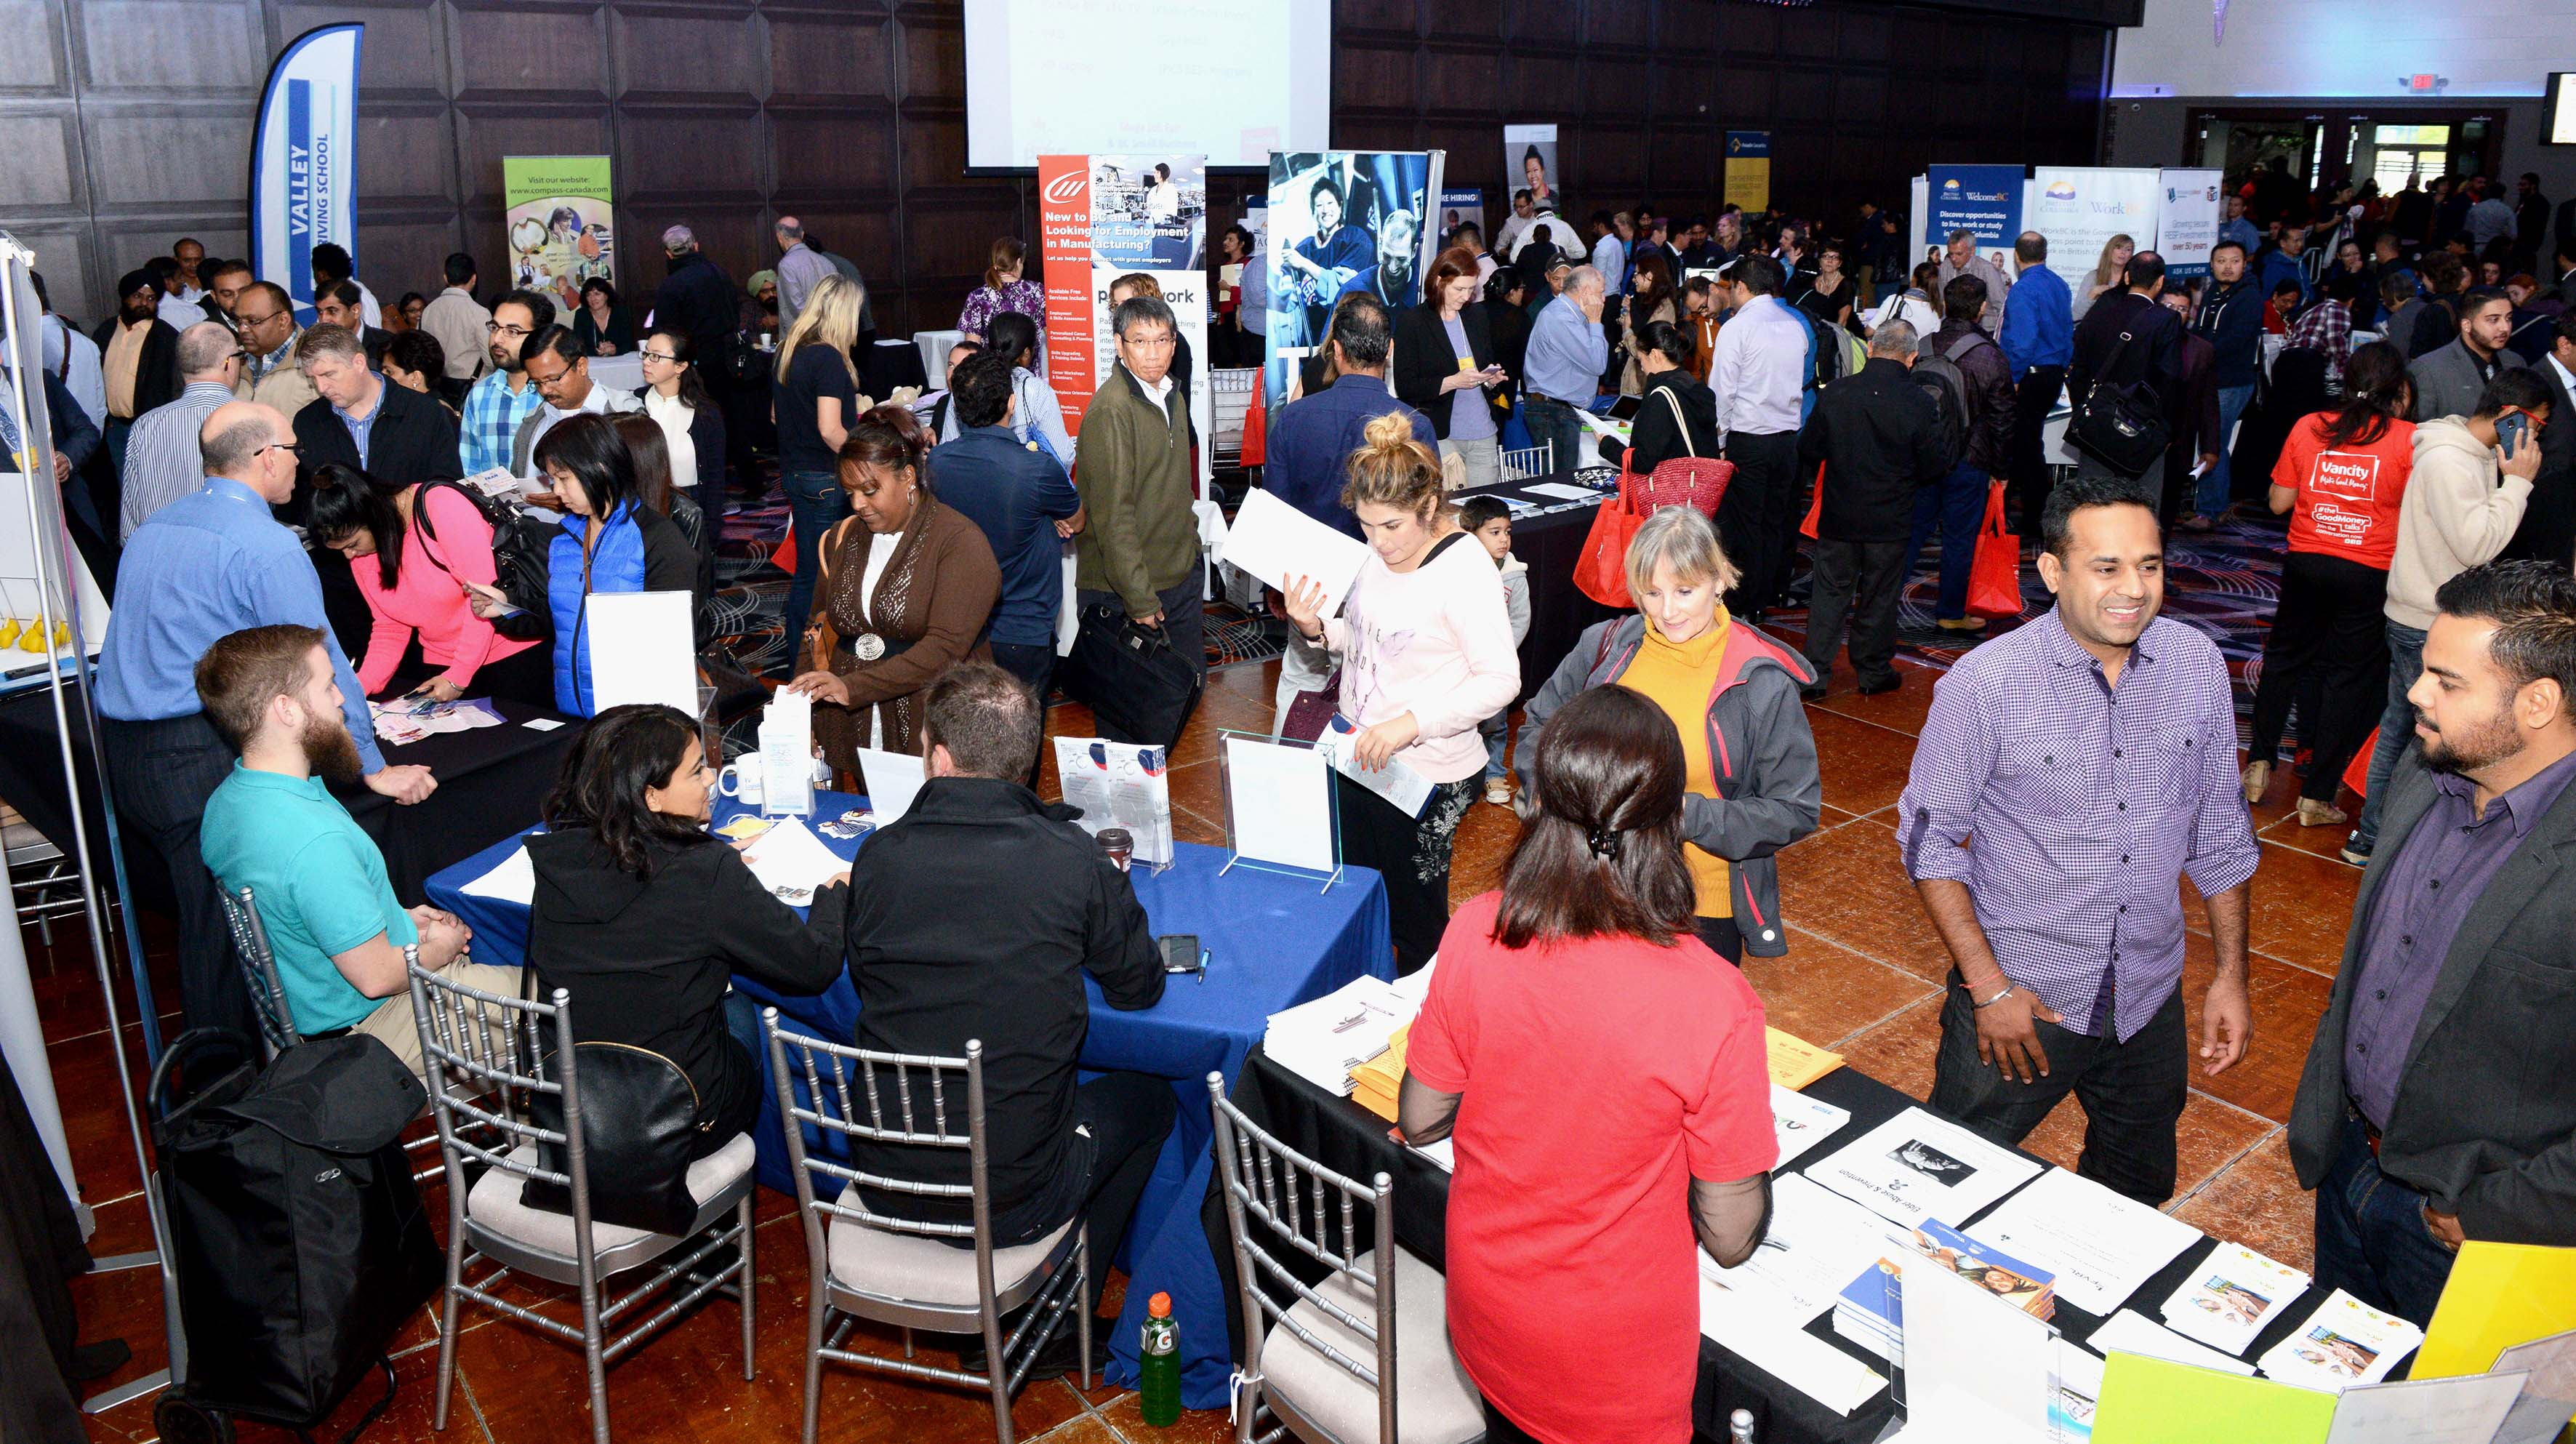 Still Job Hunting? Here are the Top 3 Reasons to Attend the Mega Job Fair and Business Expo 2016